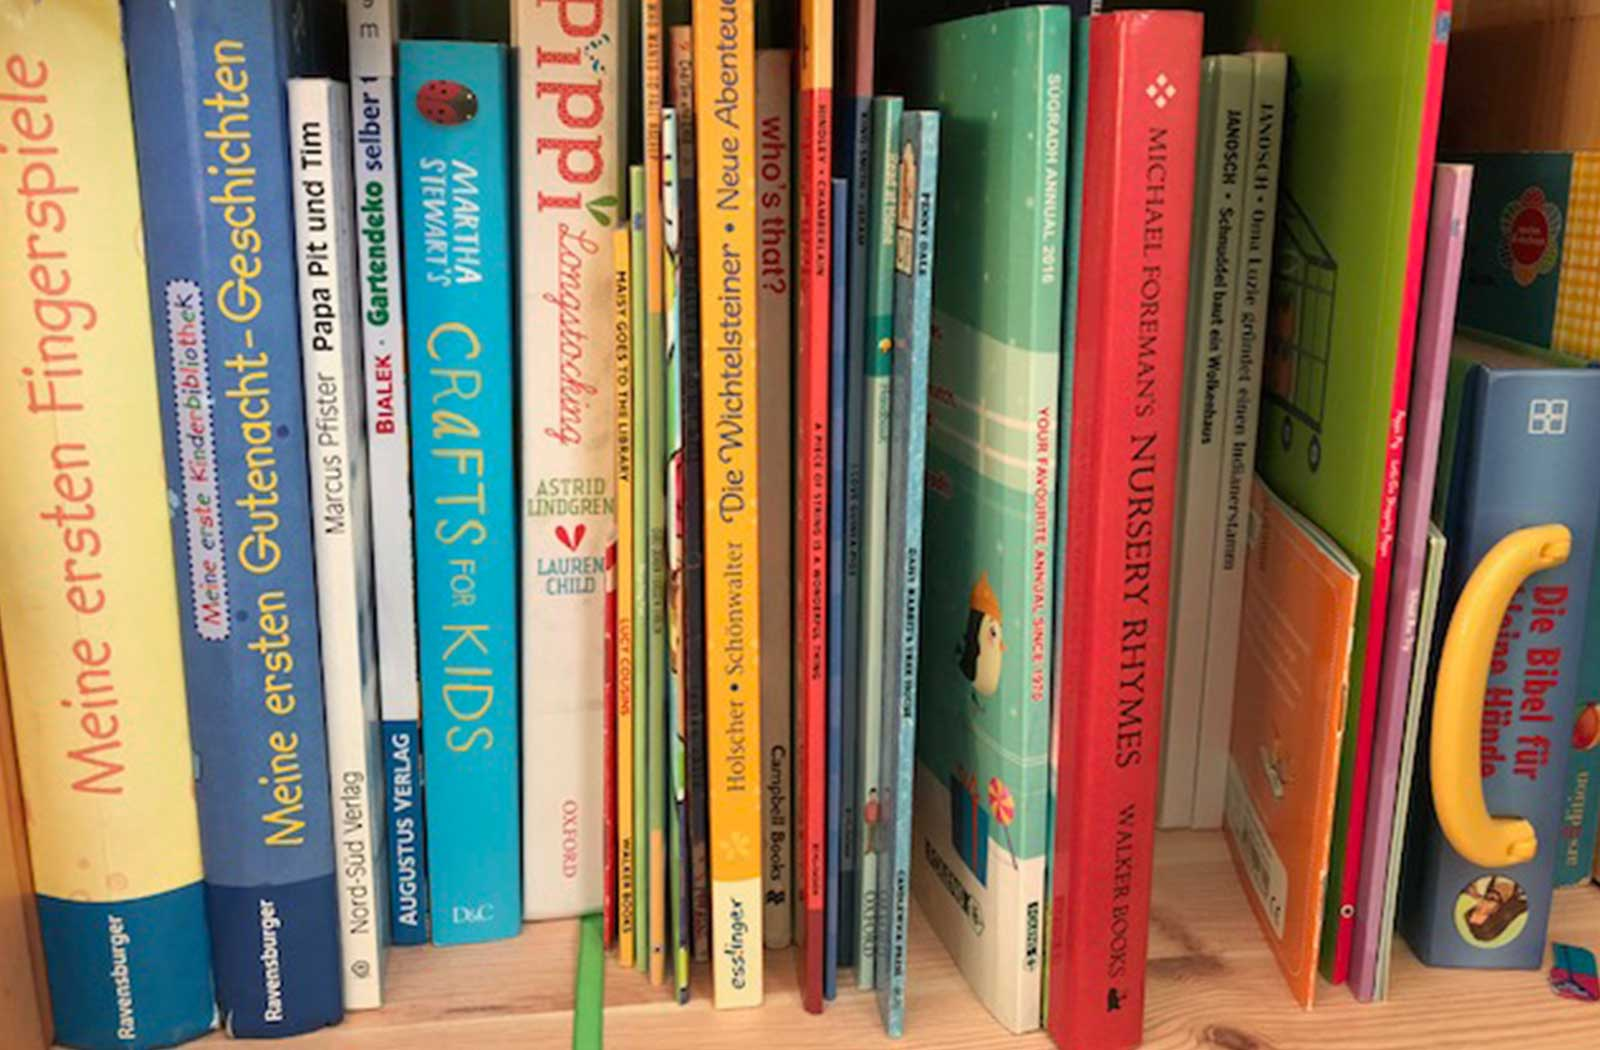 A very full bookshelf with books in various languages, offering children opportunities